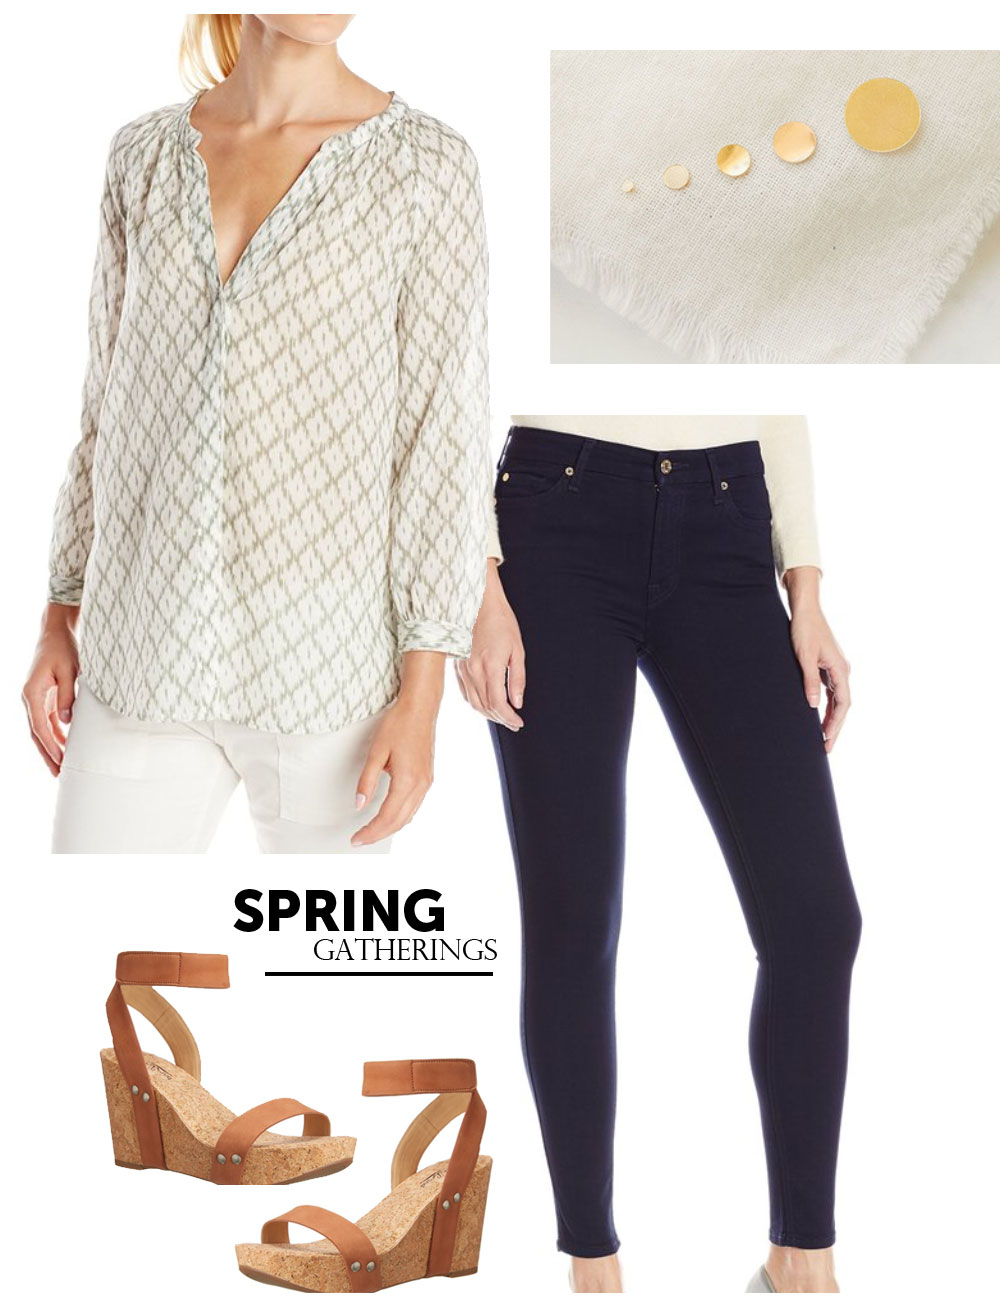 Wardrobe Style Board | Spring Gatherings